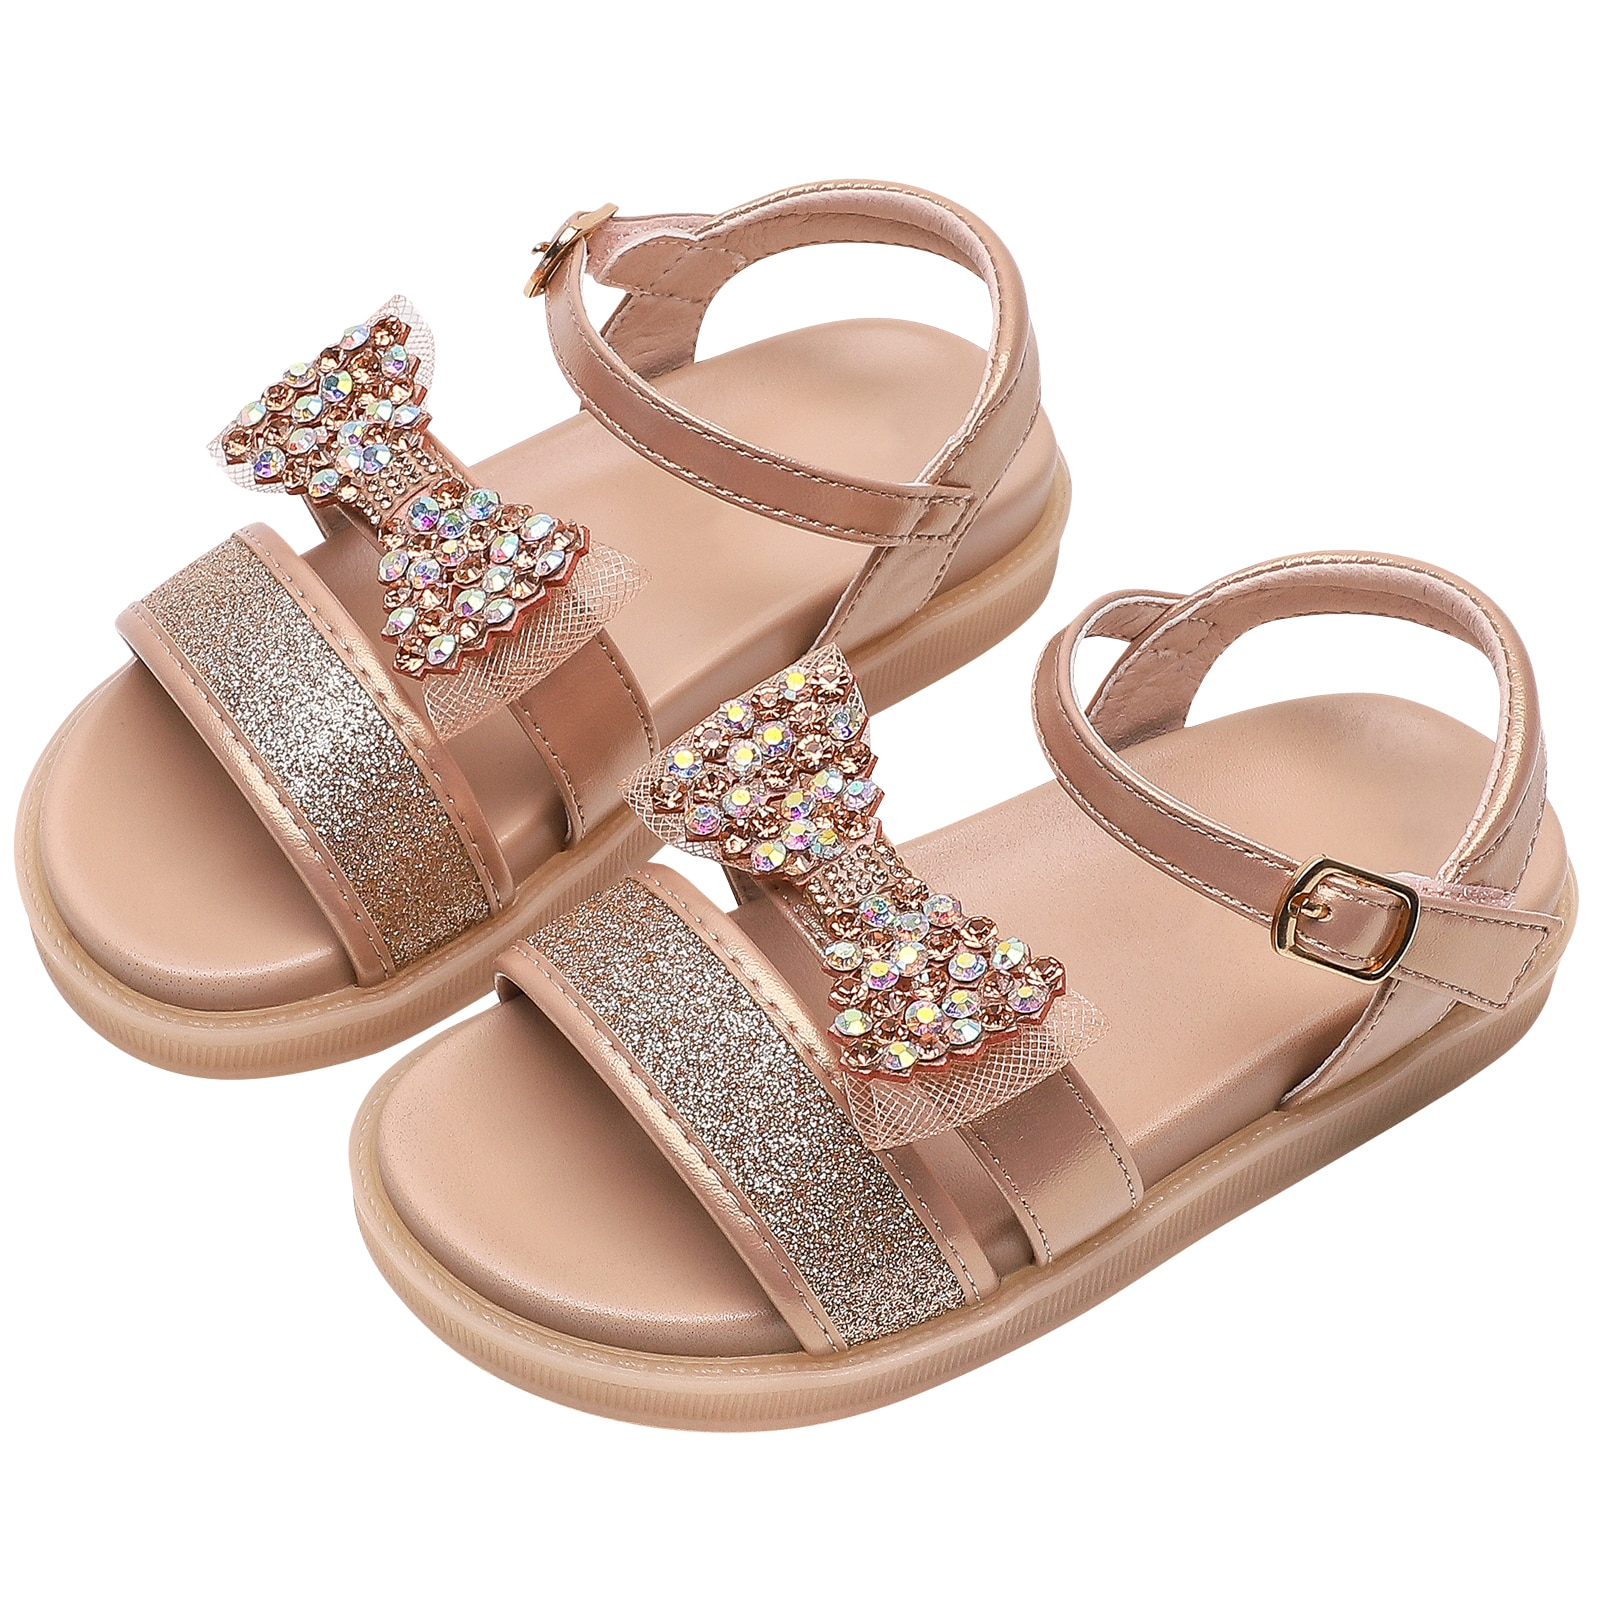 Girl's Sandal Rhinestone Bowtie Girl Microfiber Leather Shoes Kids Open-Toed Princess Sandals Breathable Summer Daily Party